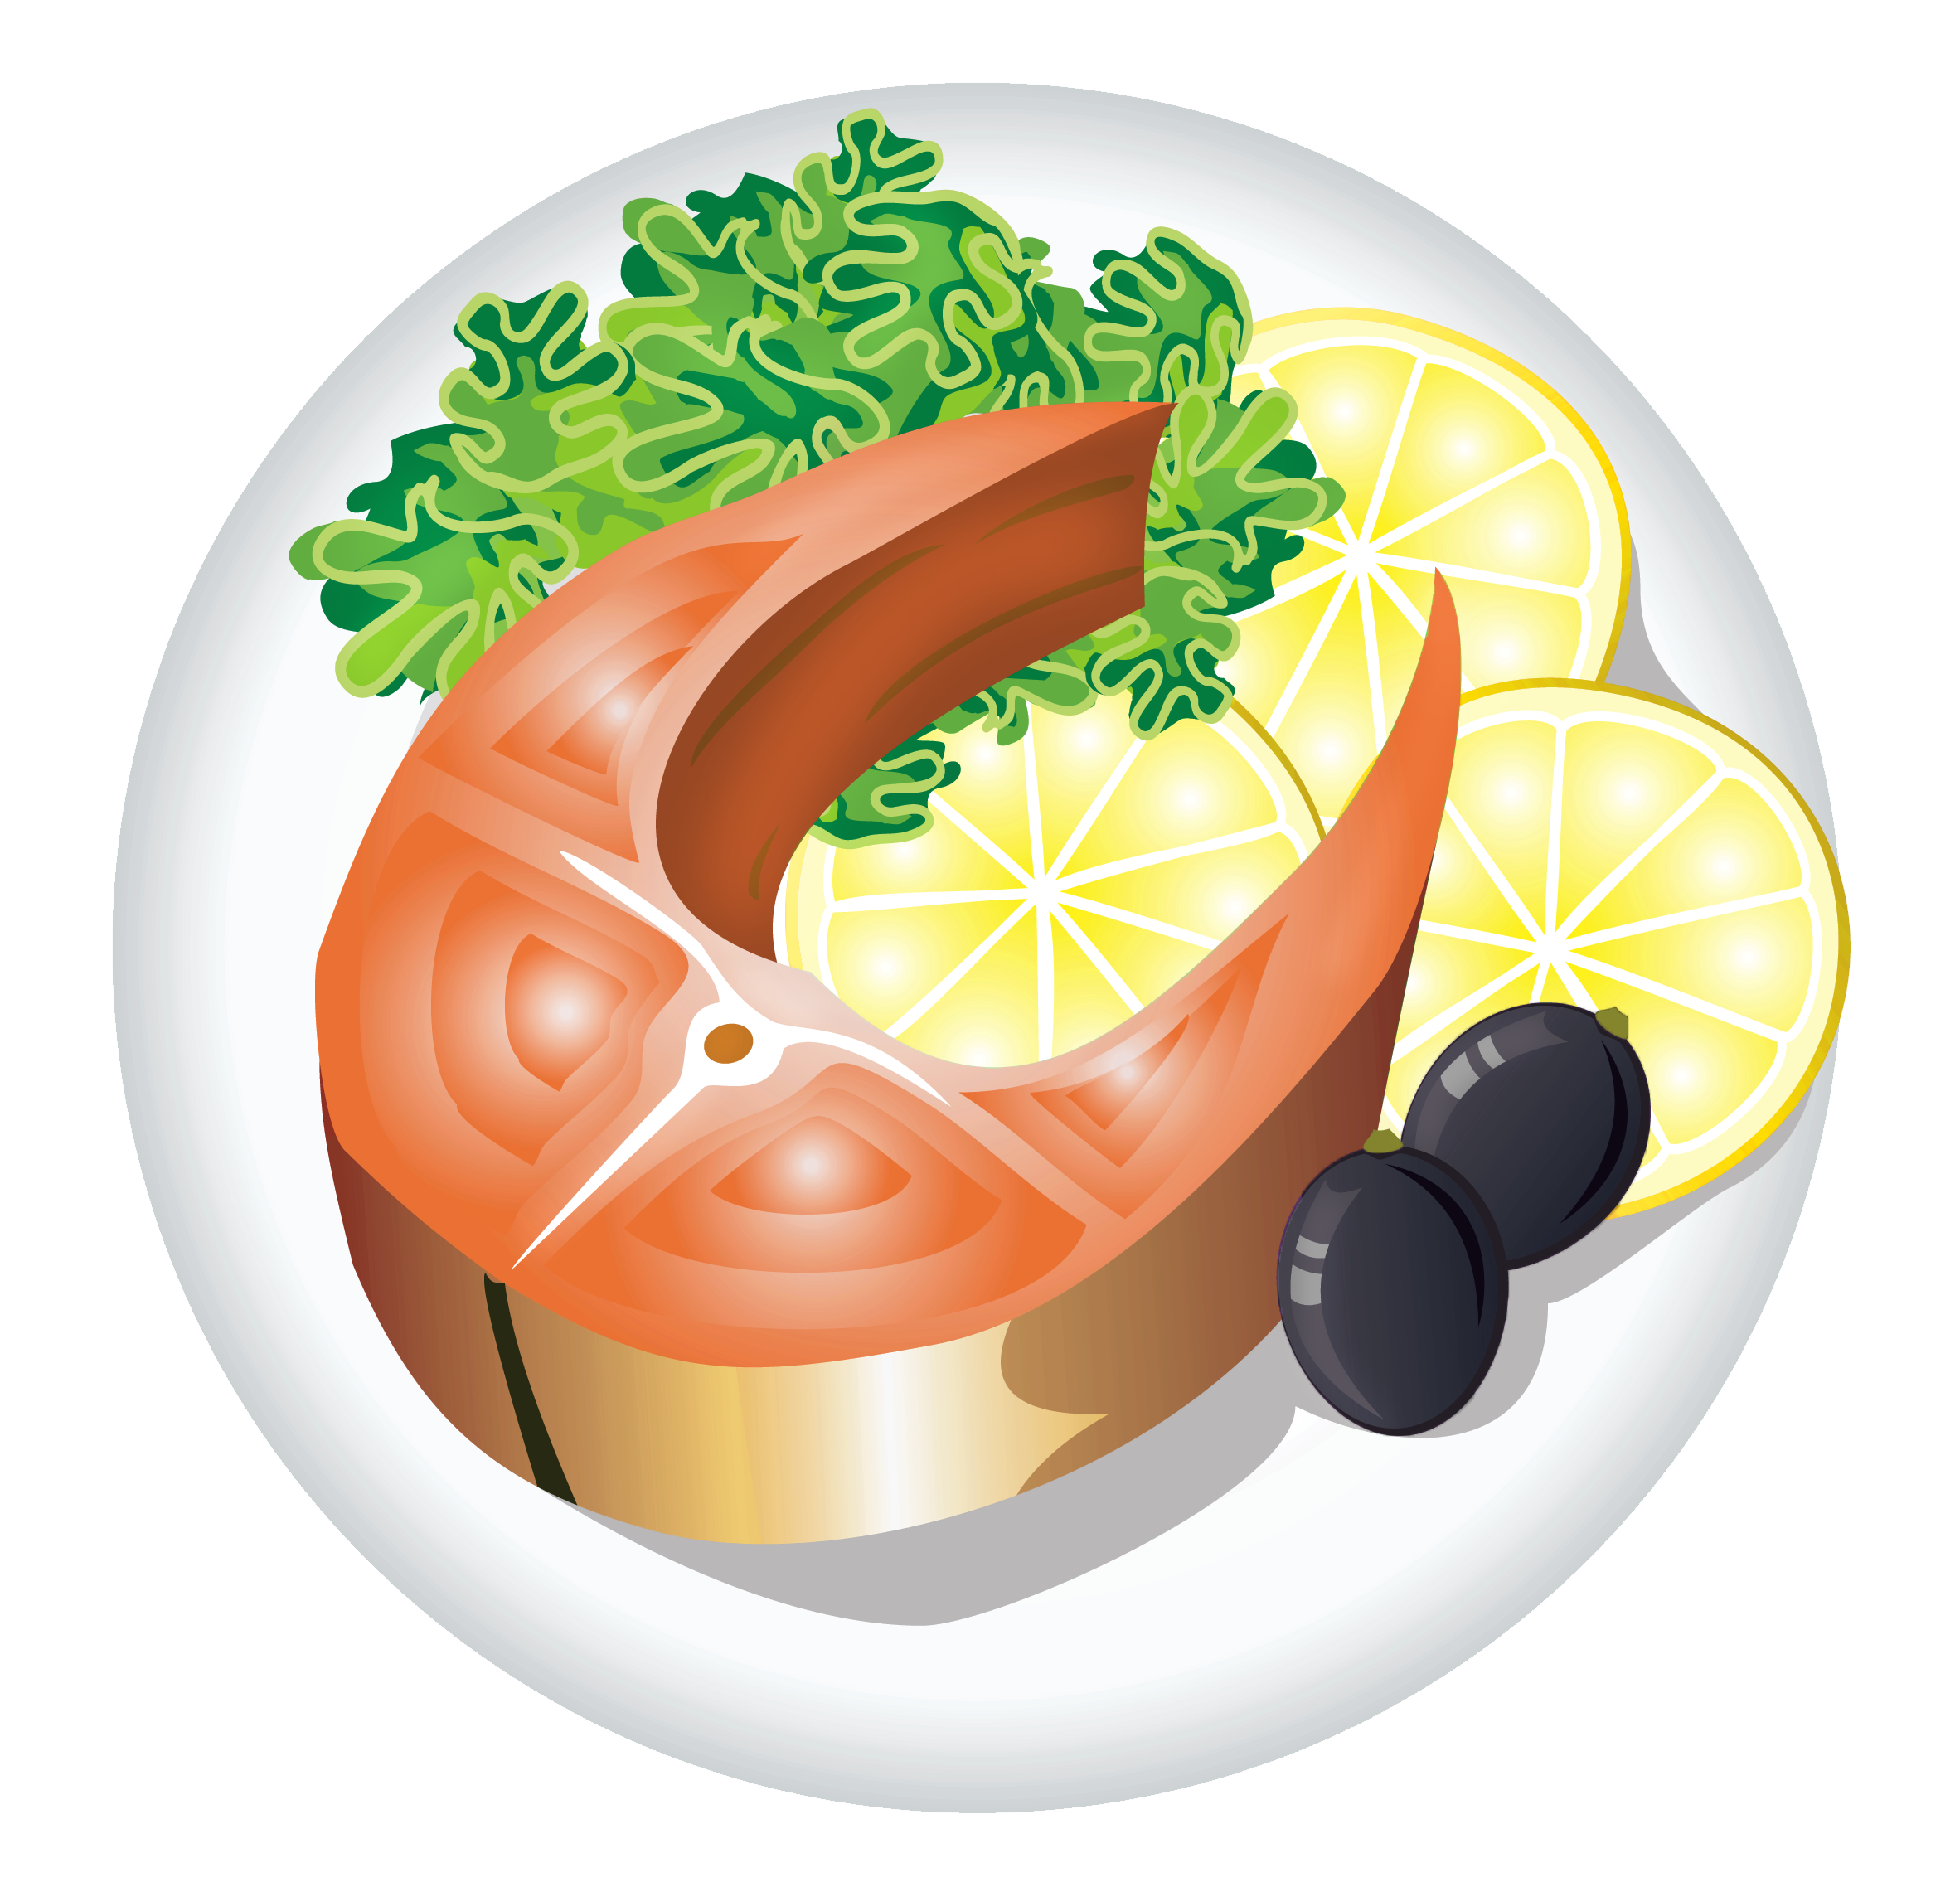 Related image Seafood art, Fish dishes, Food png